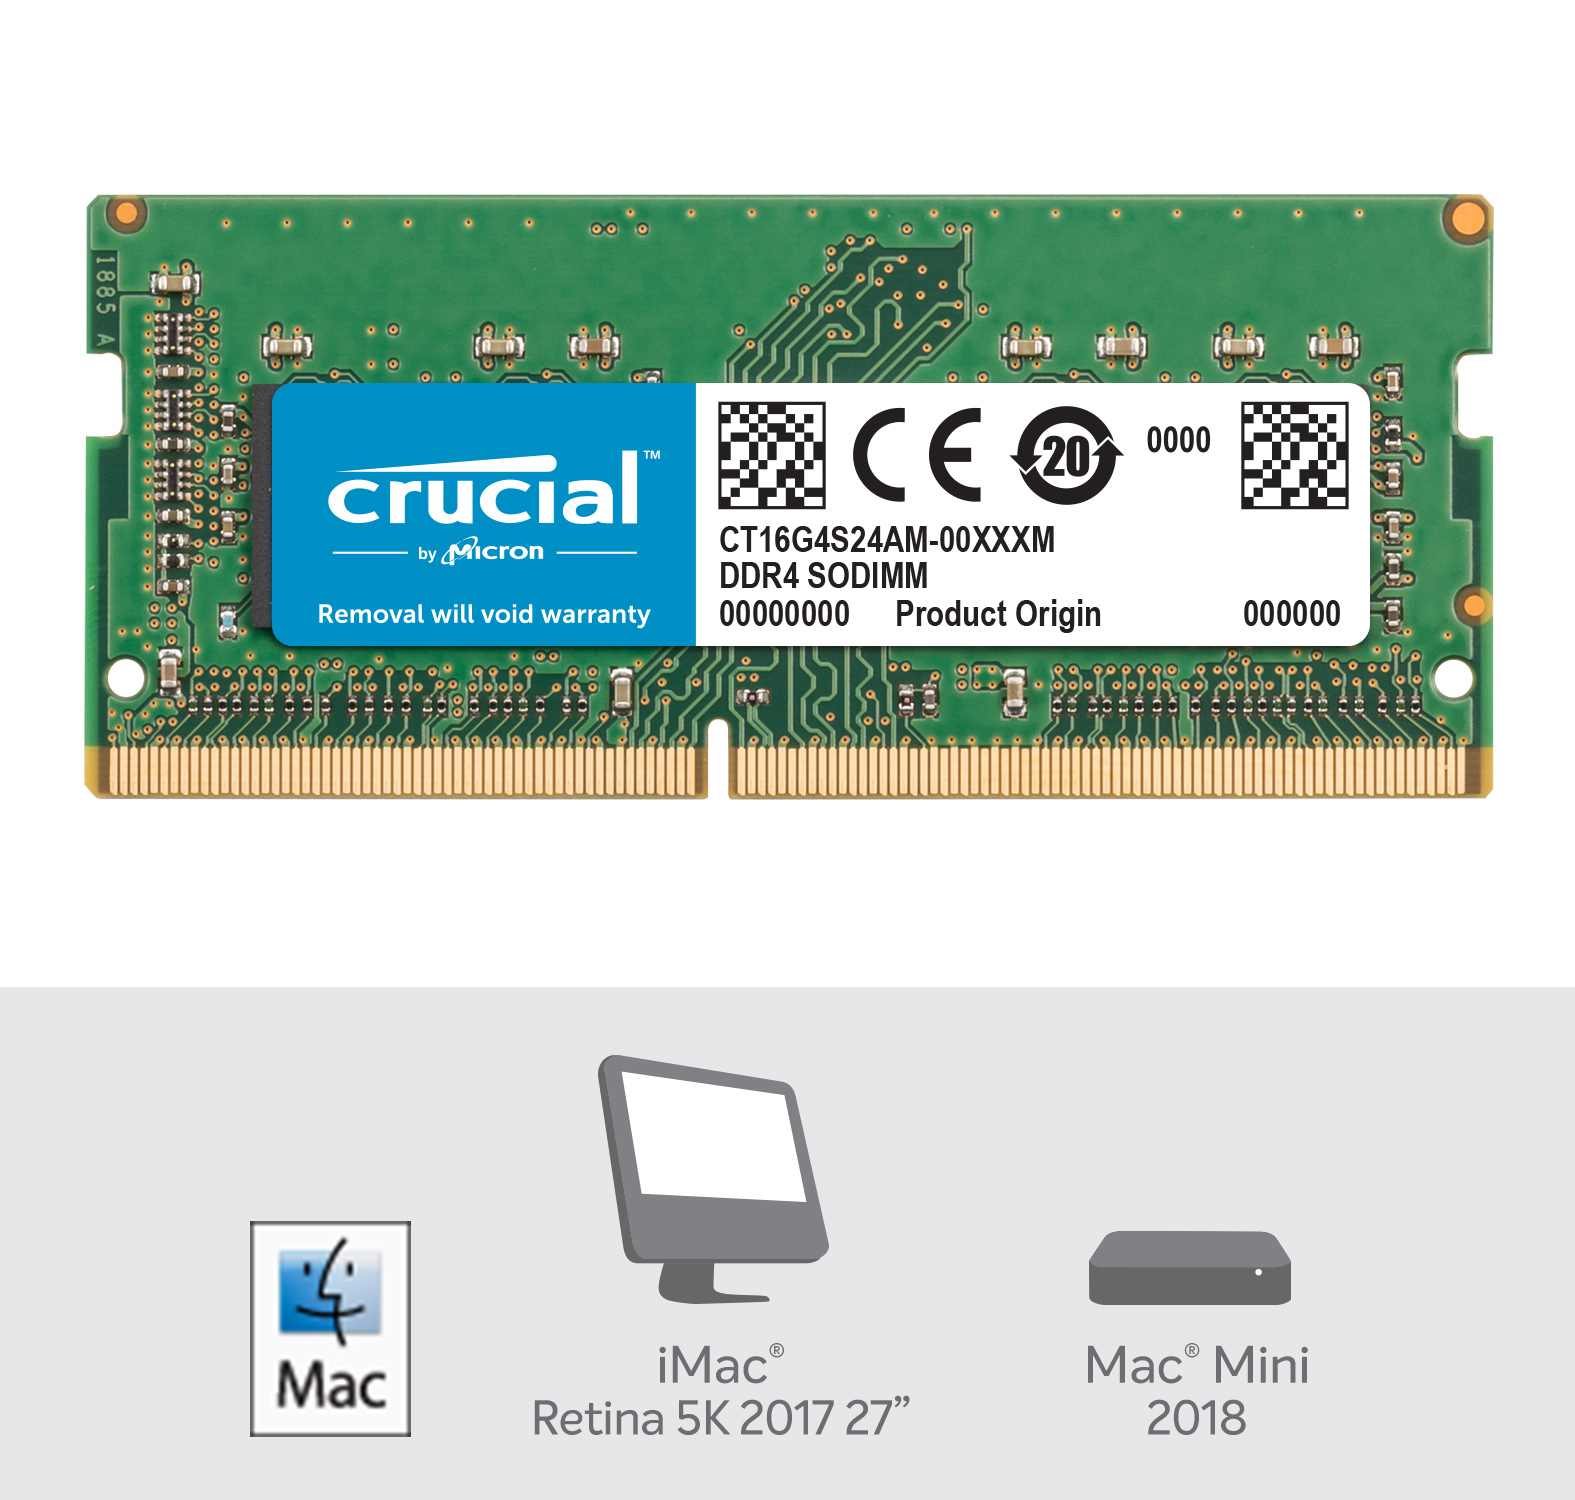 Crucial 16GB DDR4-2400 SODIMM Memory for Mac- view 2